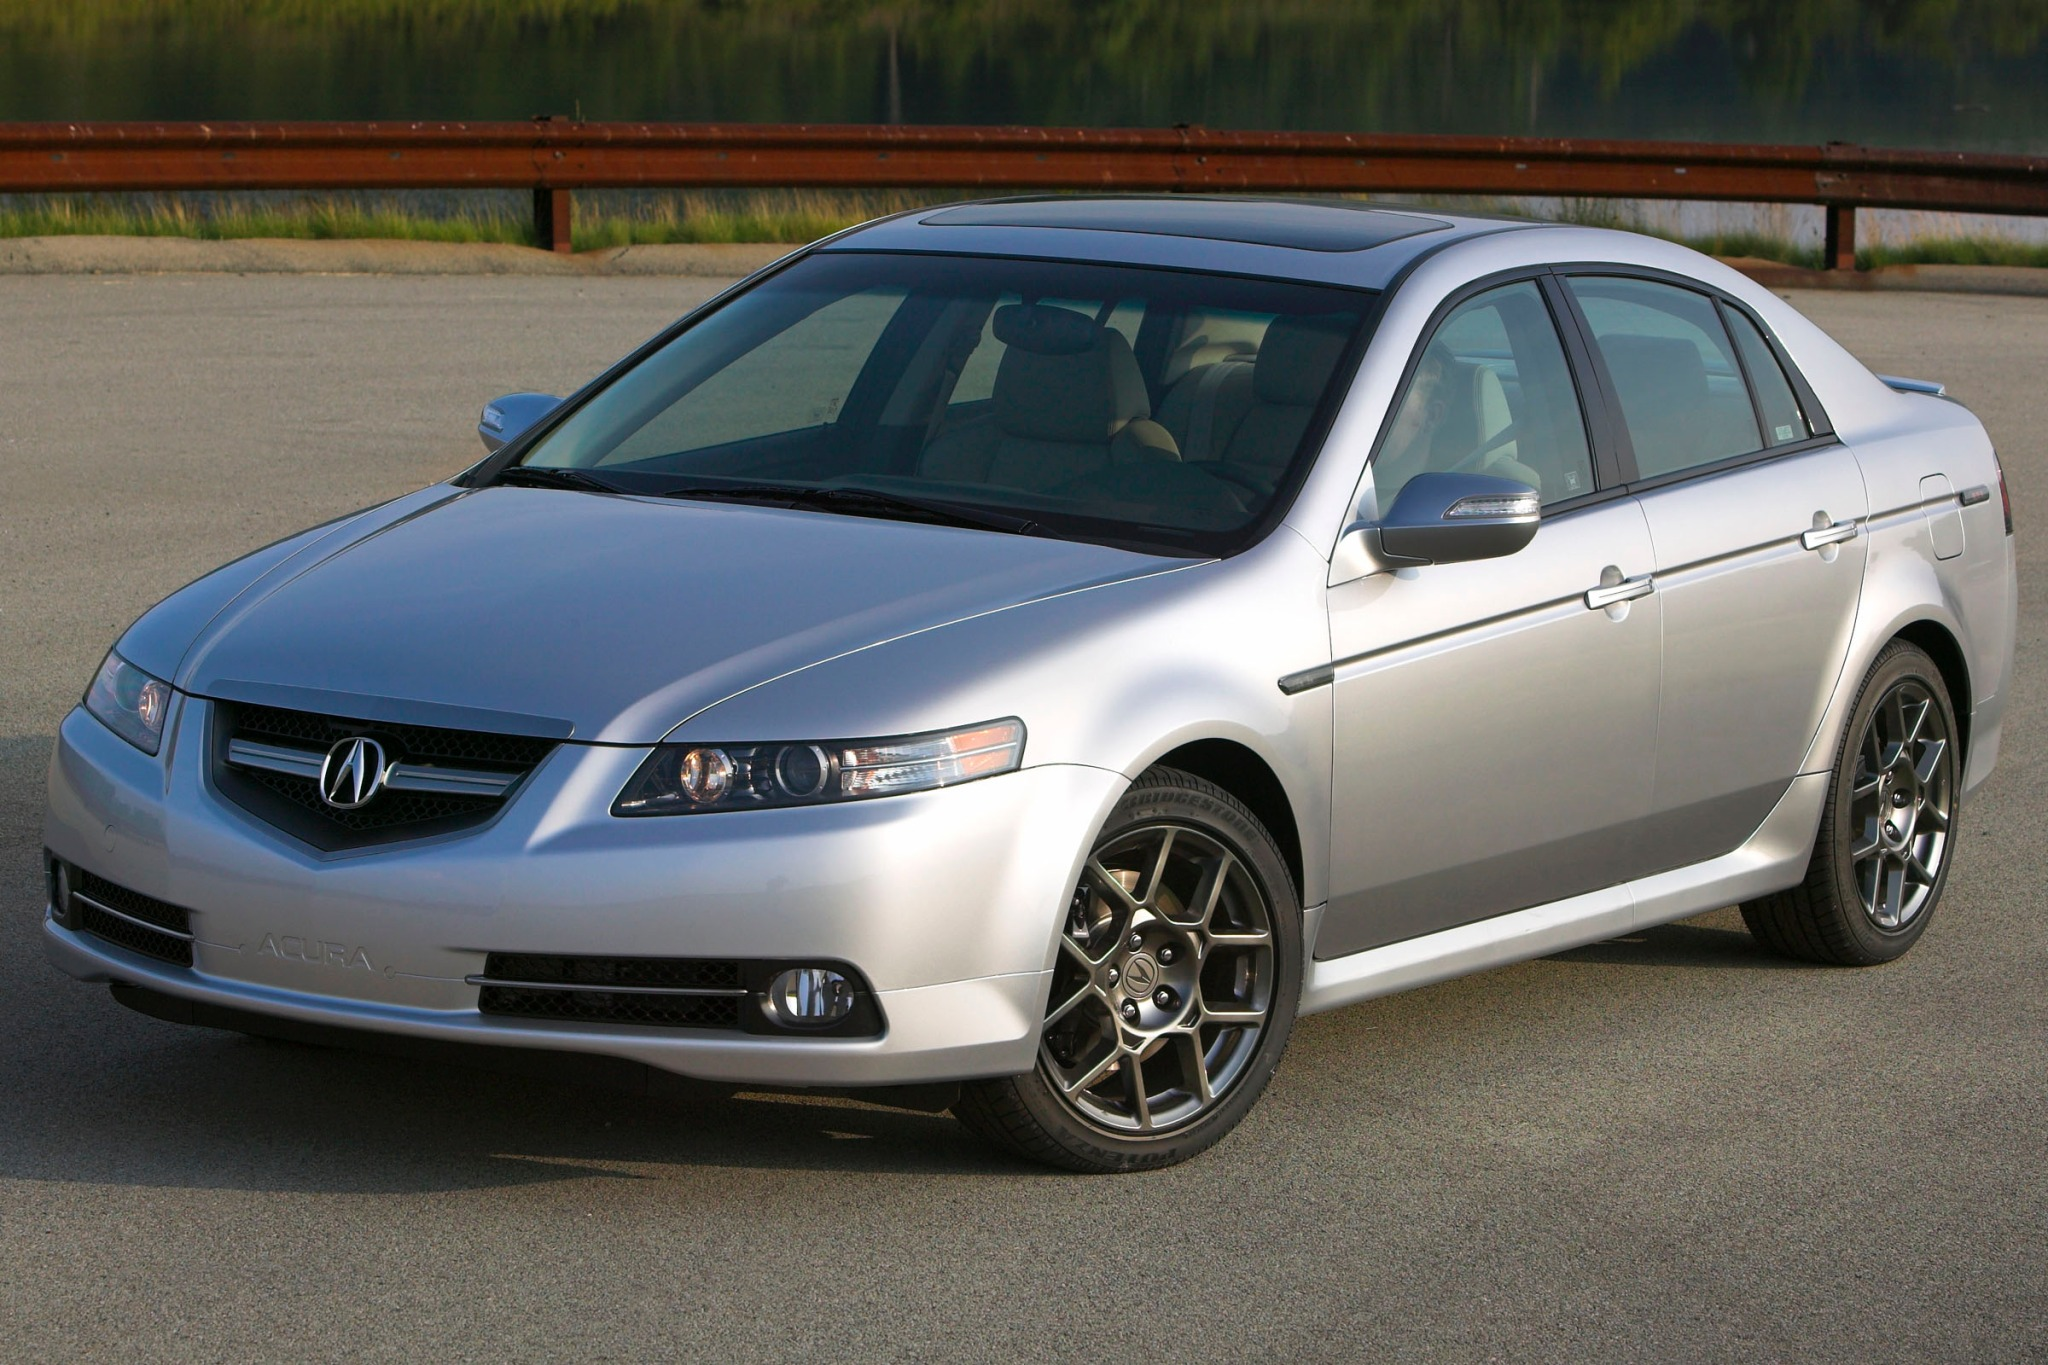 2007 acura tl photos informations articles. Black Bedroom Furniture Sets. Home Design Ideas